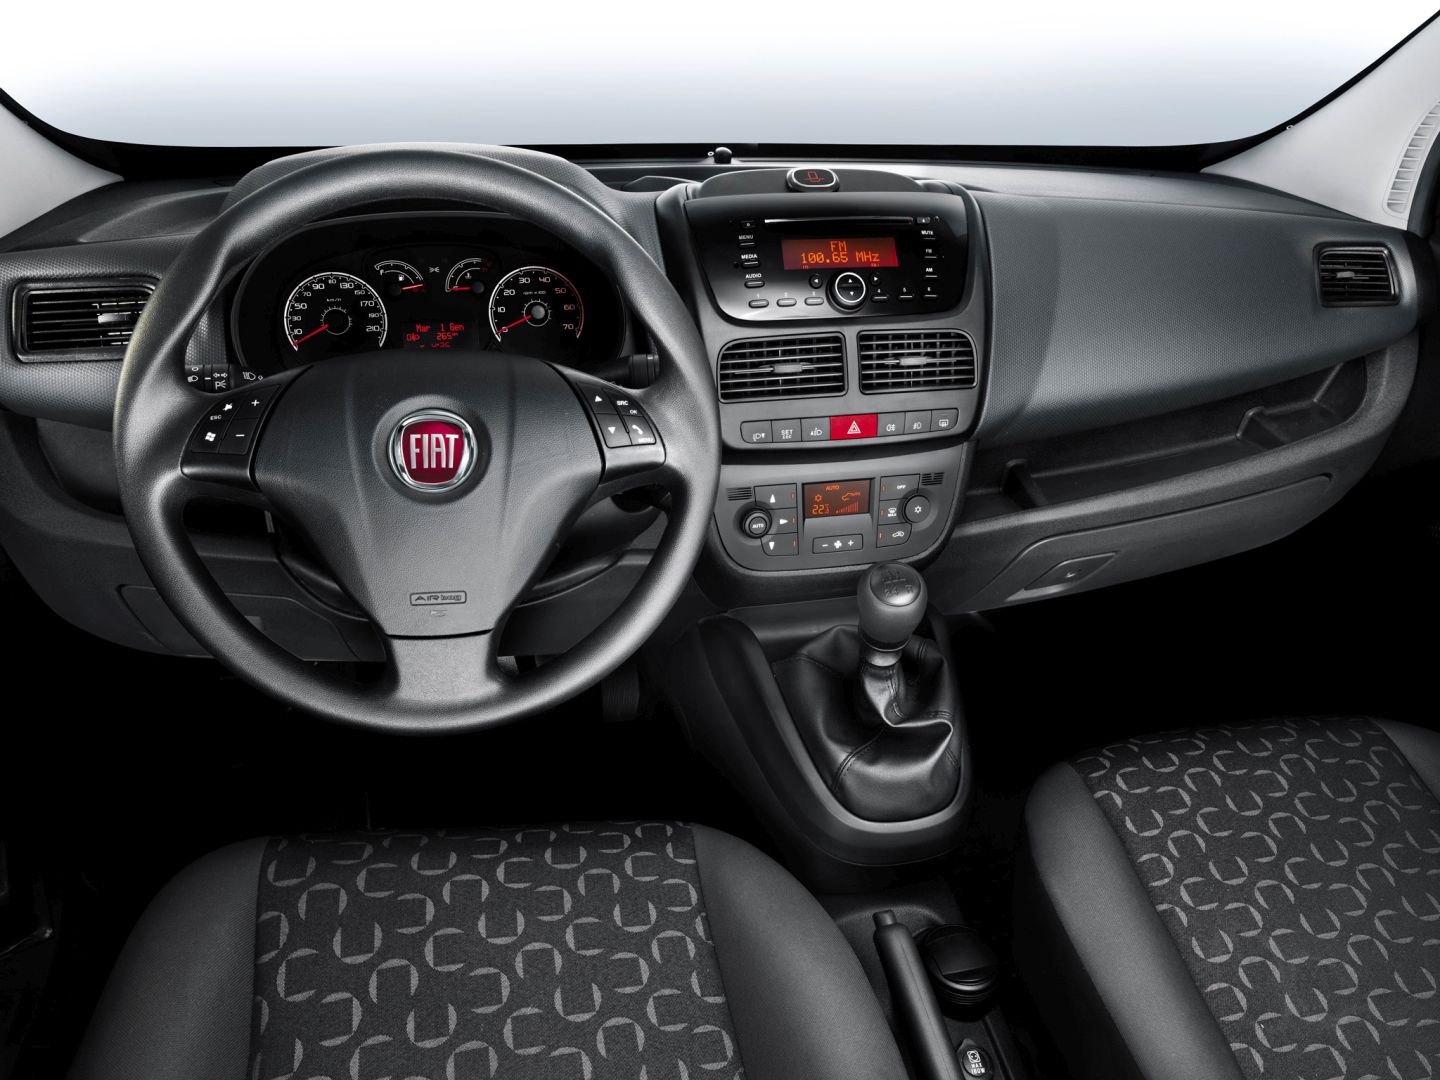 astonishing-design-of-the-black-dash-ideas-with-black-steering-as-the-fiat-doblo-2015-interior-ideas